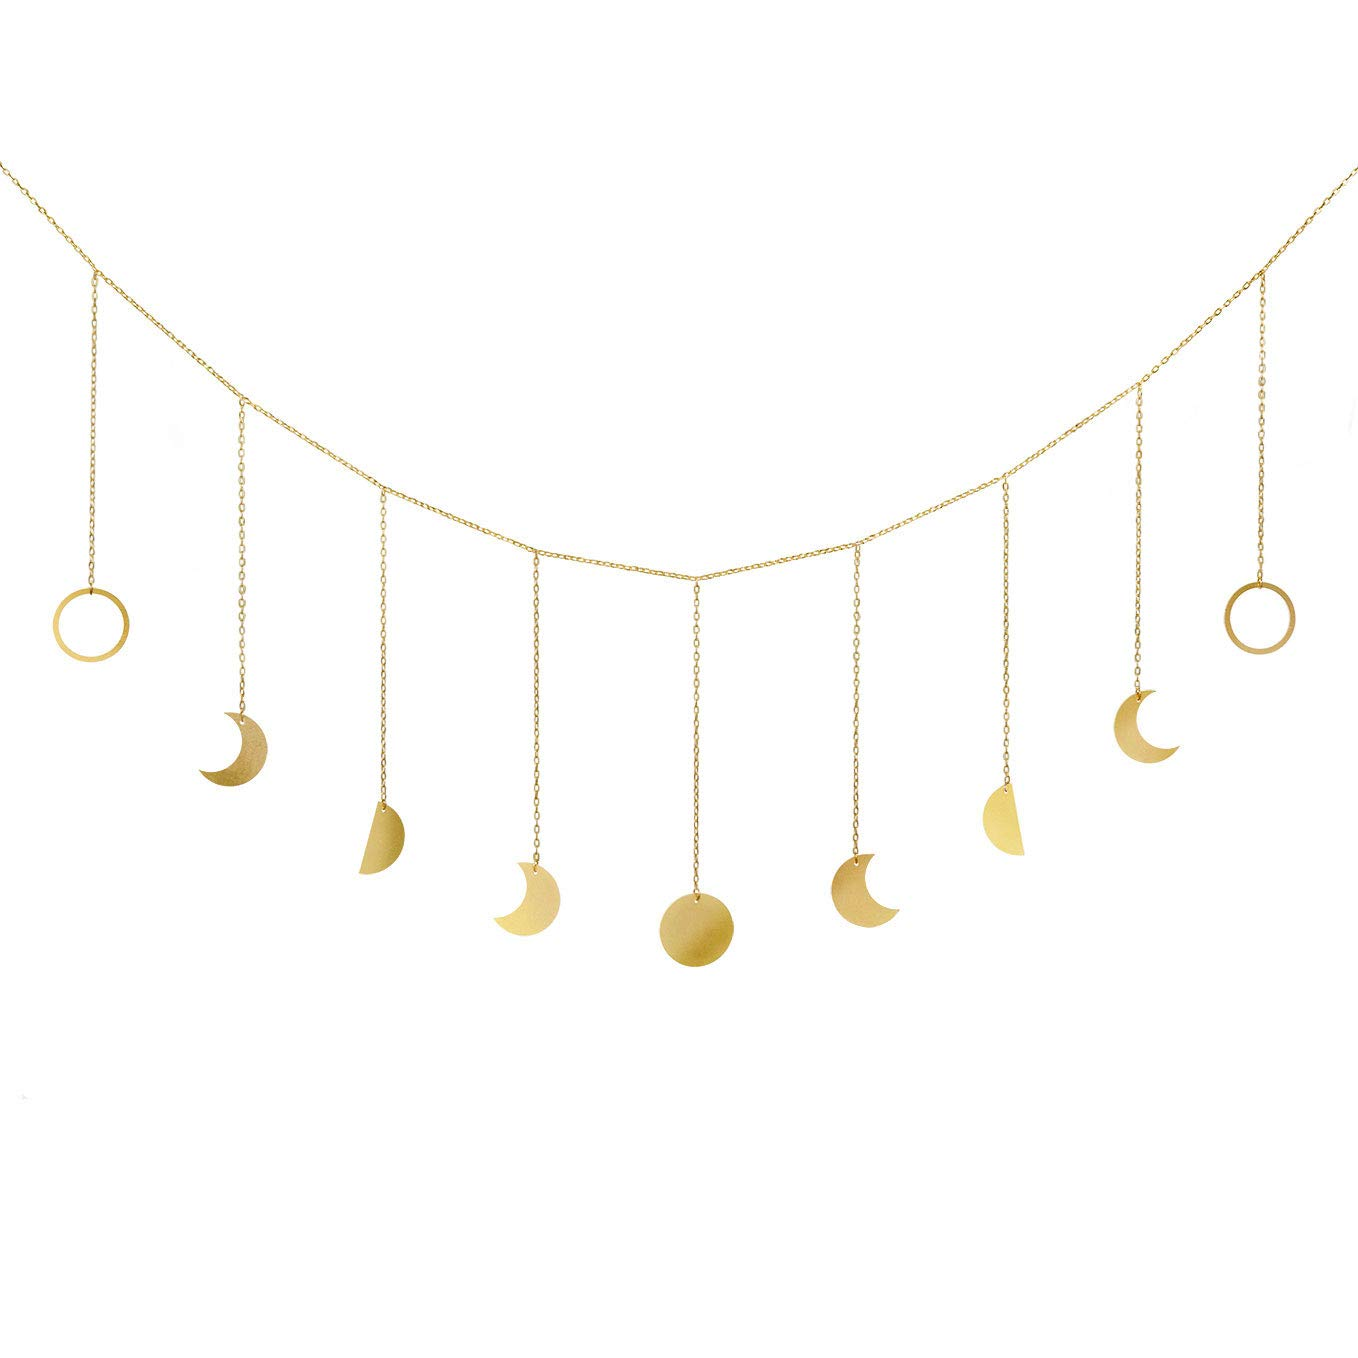 Mkono Moon Phase Garland with Chains Boho Gold Shining Phase Wall Hanging Ornaments Moon Hang Art Room Decor for Wedding Home Office Nursery Room Dorm, Gold